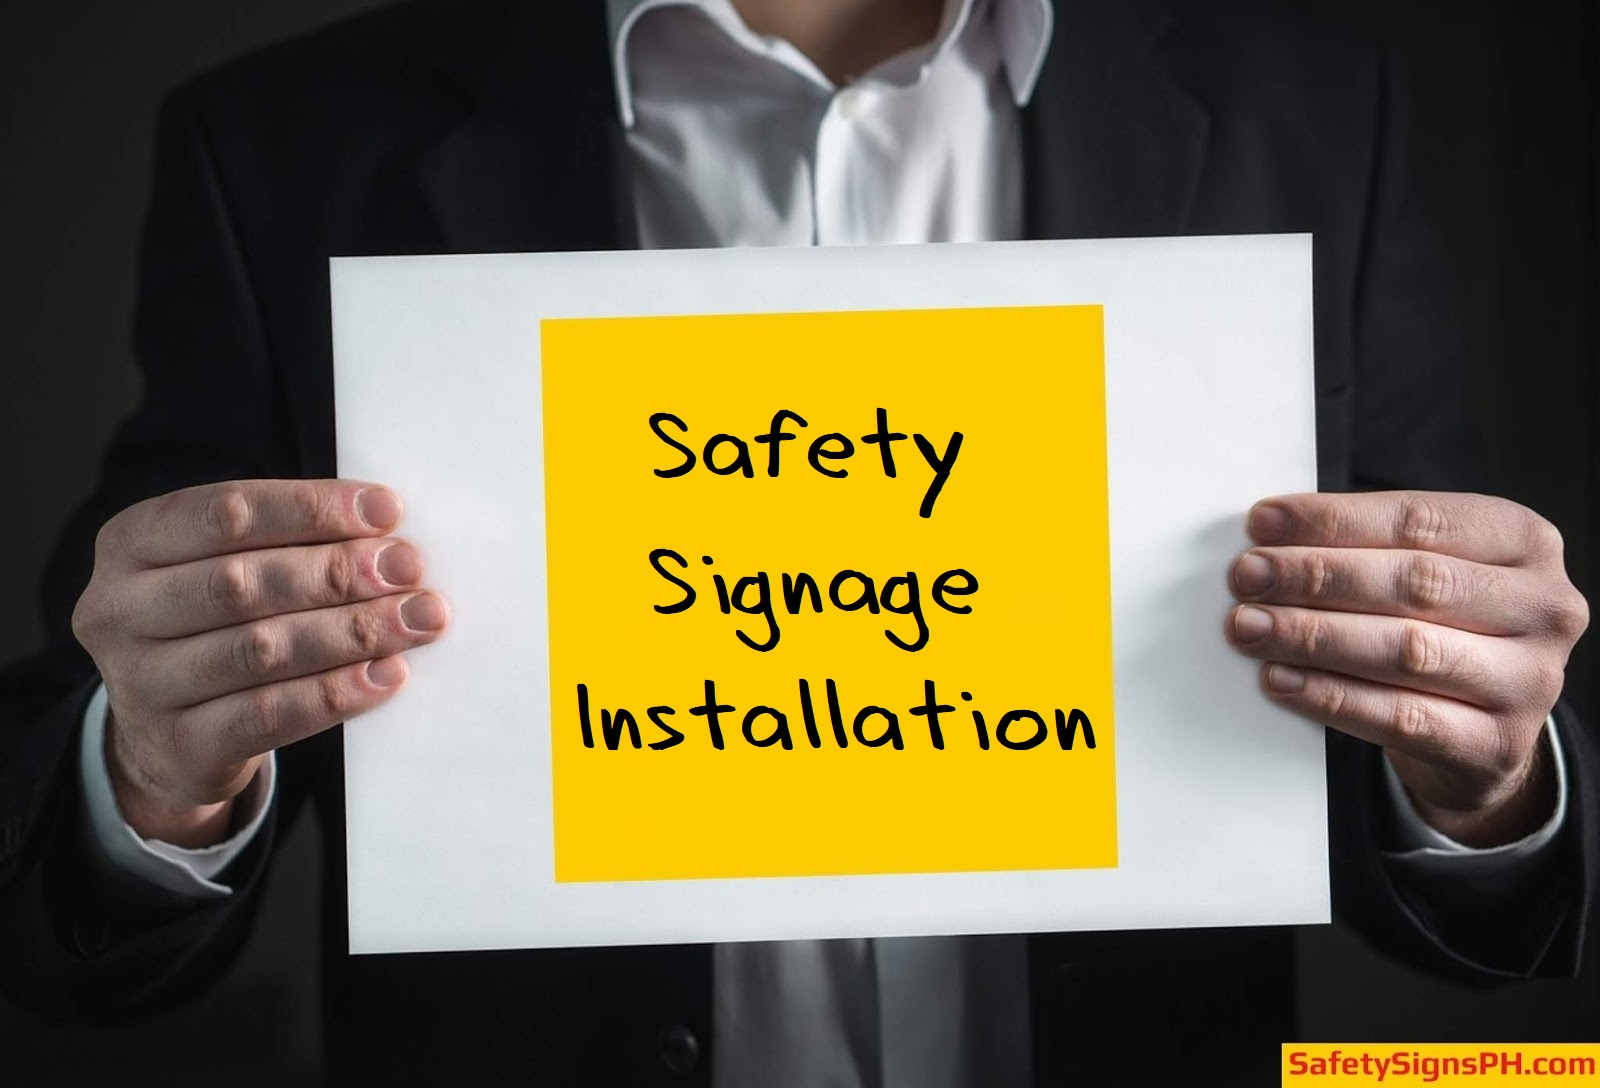 Safety Signage Installation Services Philippines